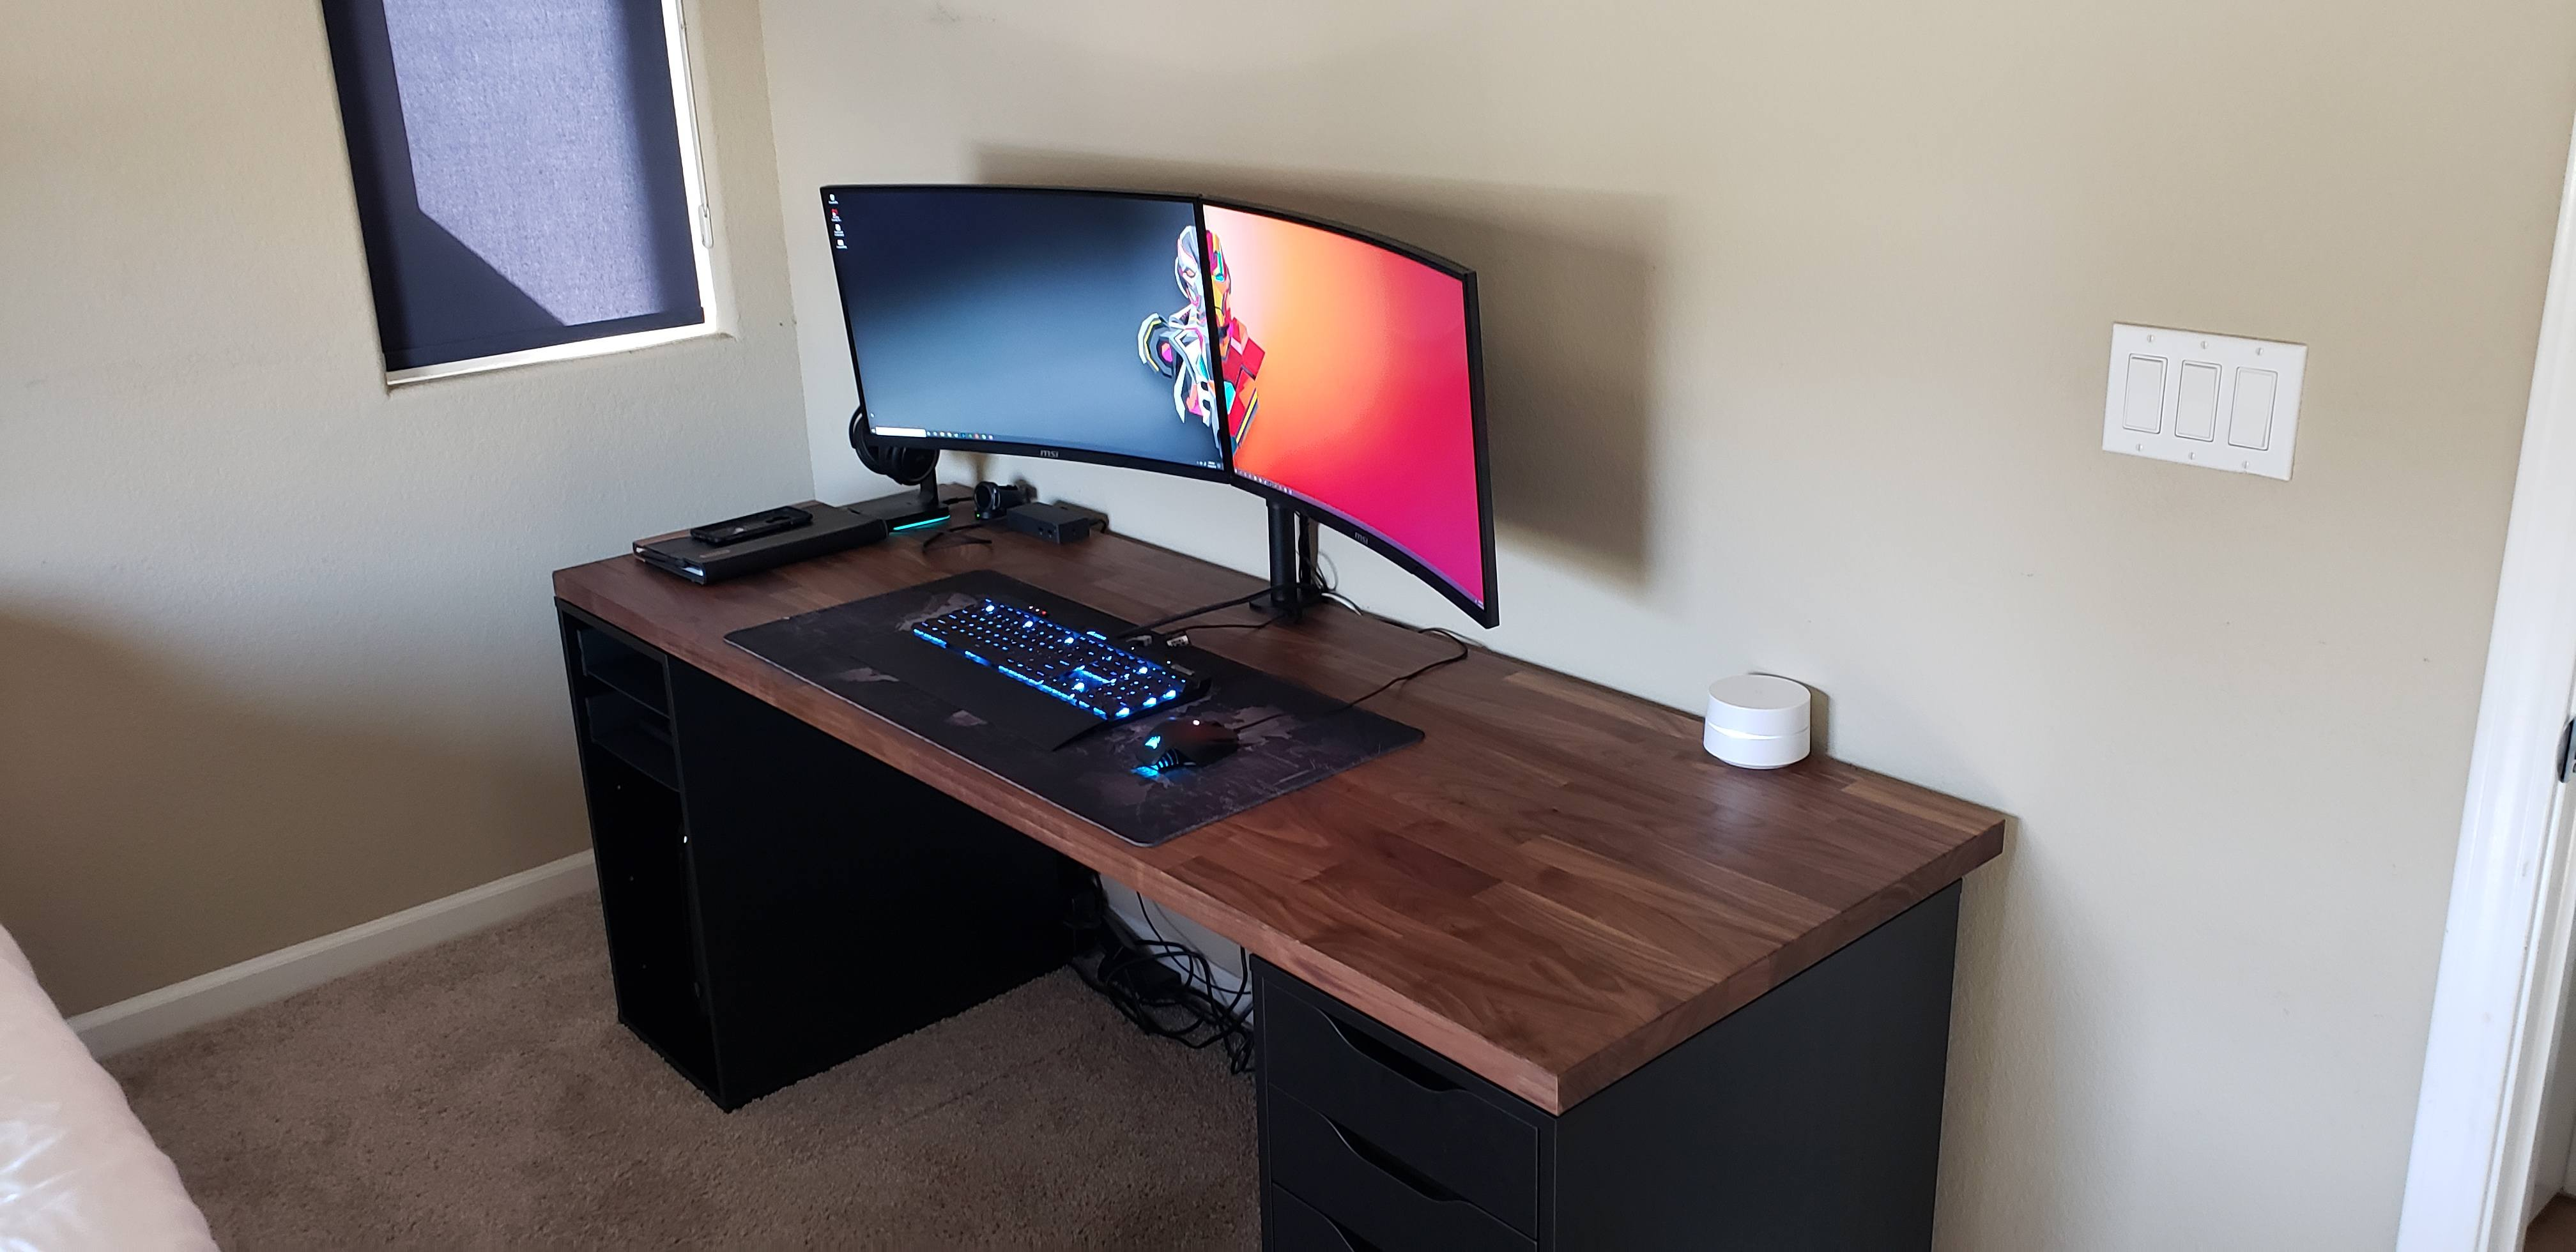 Ikea Desk Upgrade New Builds And Planning Linus Tech Tips